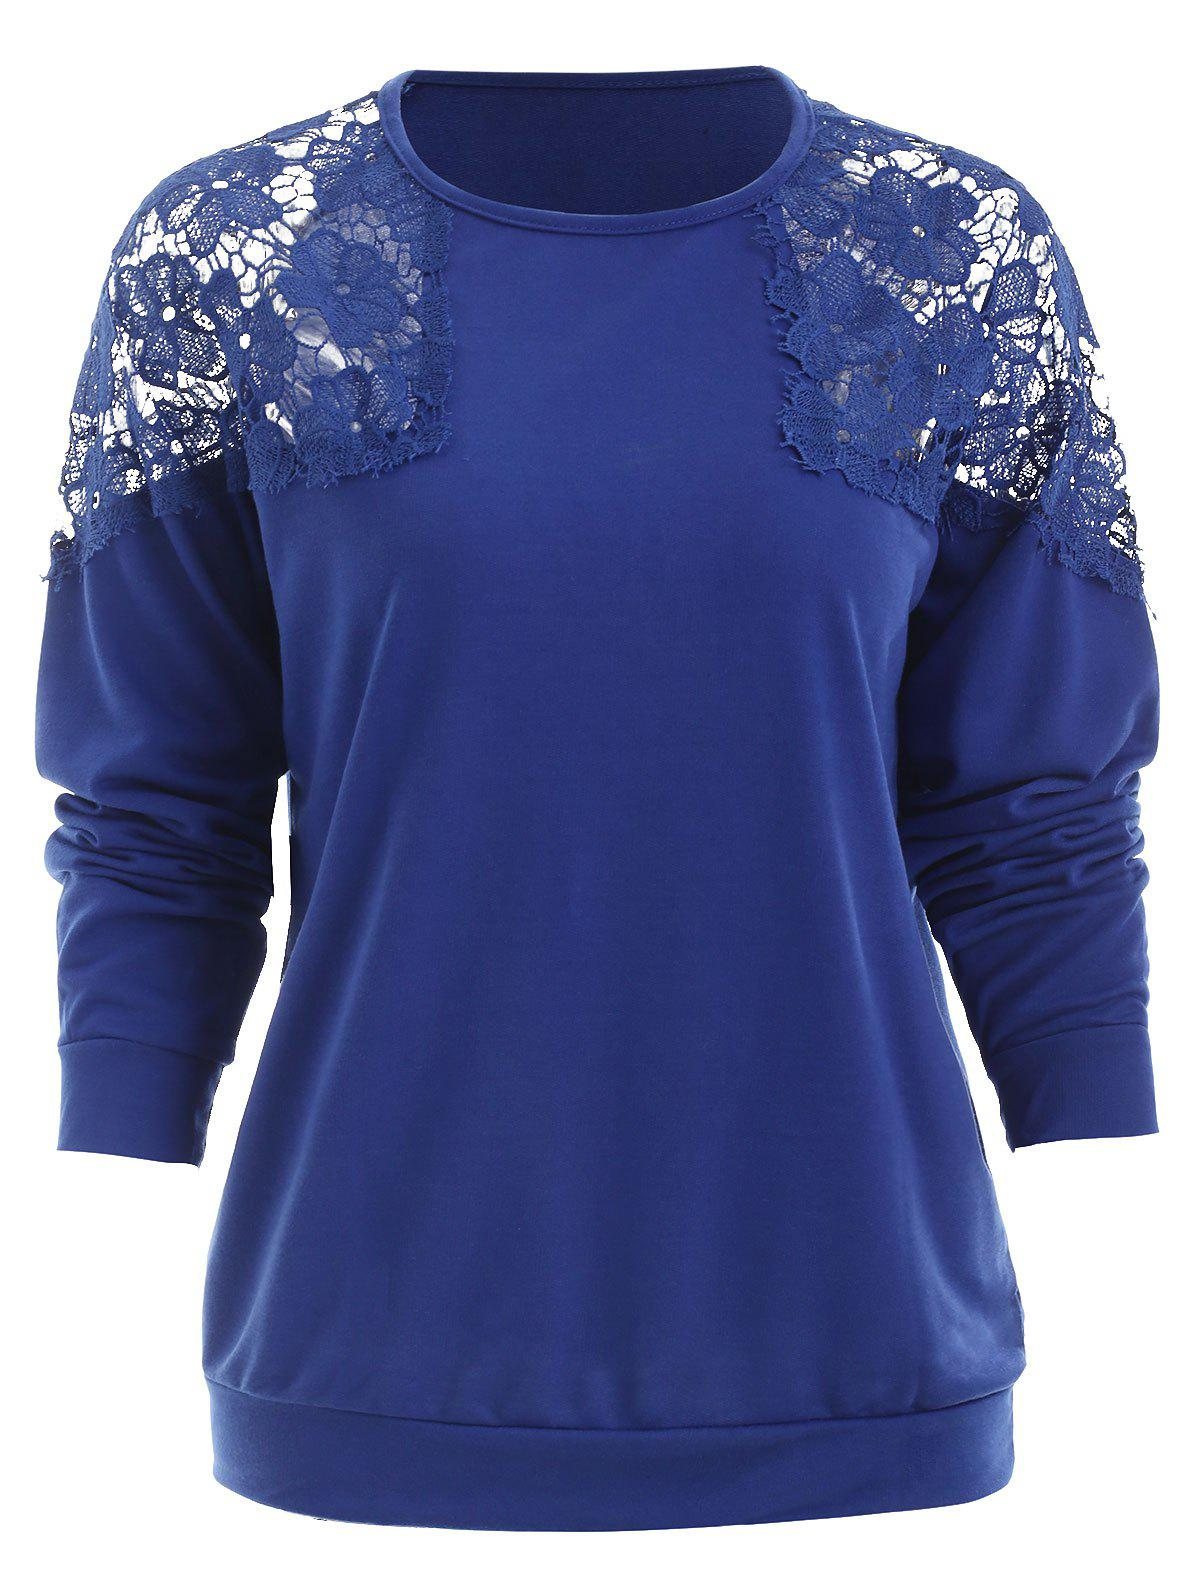 Fancy Hollow Out Lace Panel Sweatshirt